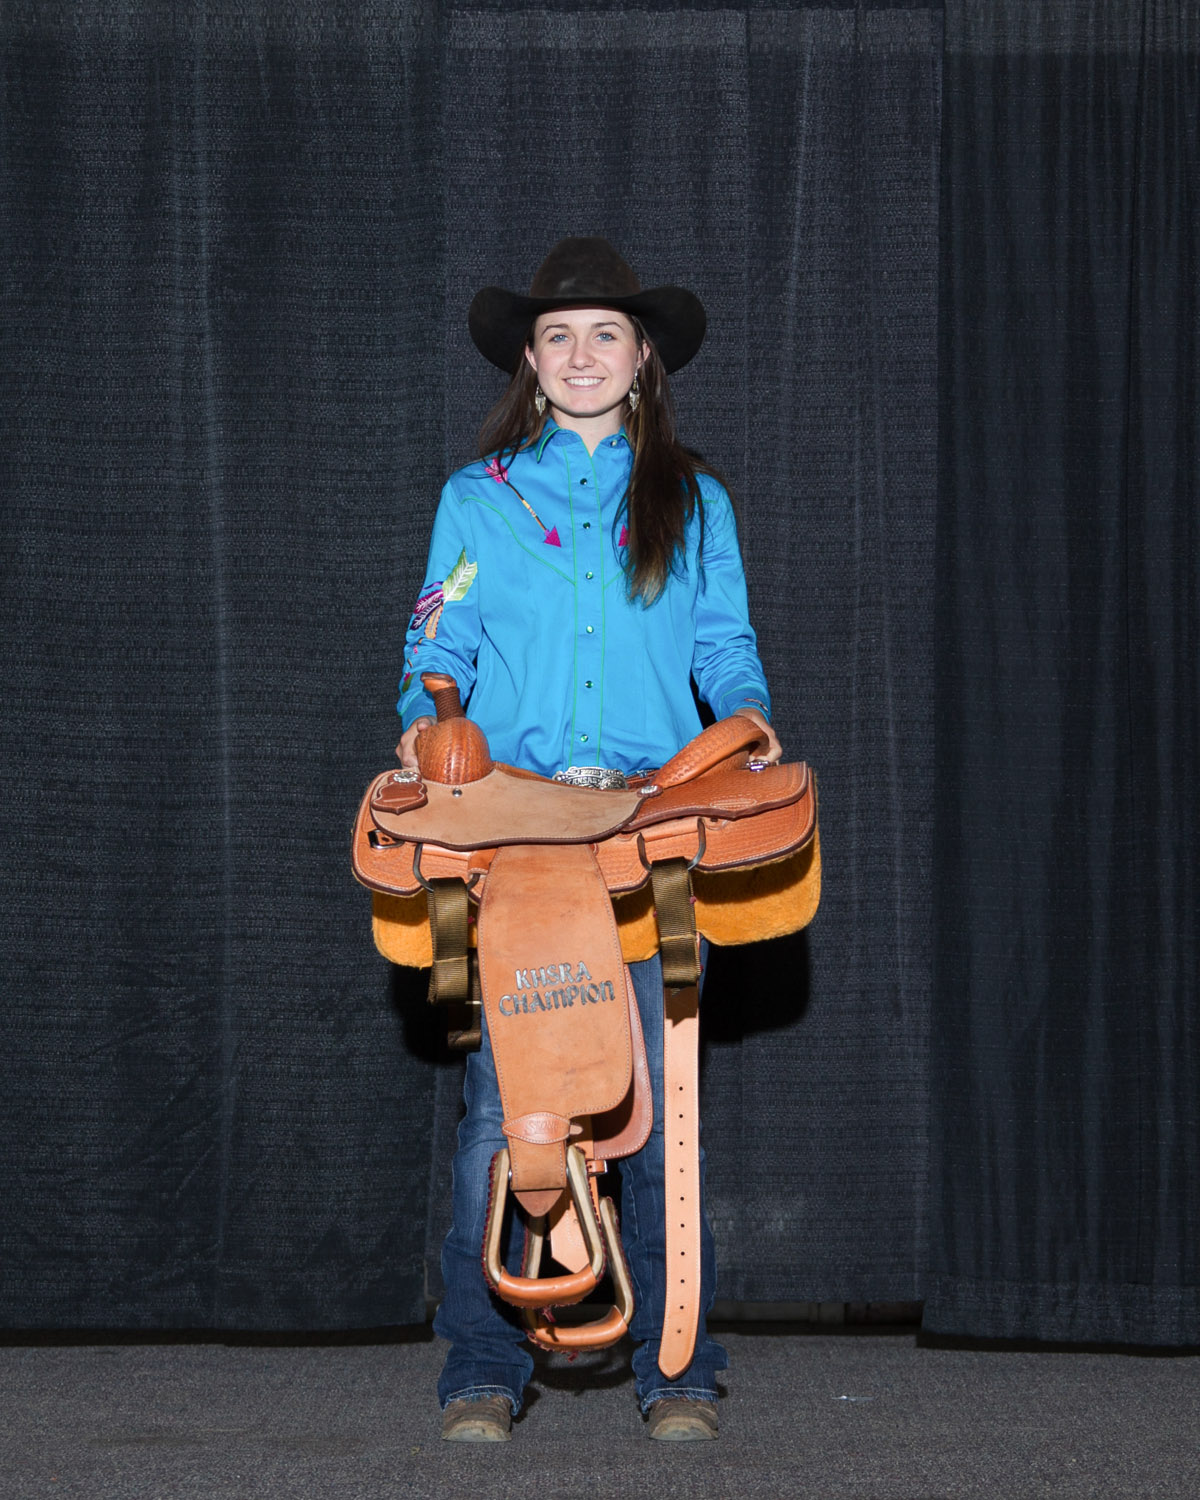 All-around cowgirl title was awarded to Paige Wiseman, Paola, at the conclusion of the Kansas High School Rodeo Finals in Topeka. She was the yearend champion in breakaway roping and girls cutting as well as ranking in the top four in both goat tying and pole bending, qualifying to complete in all four events at the National High School Rodeo Finals, July 13-19, in Rock Springs, Wyoming (Photo courtesy Kent Kerschner, www.fotocowboy.com, kent@fotocowboy.com.)